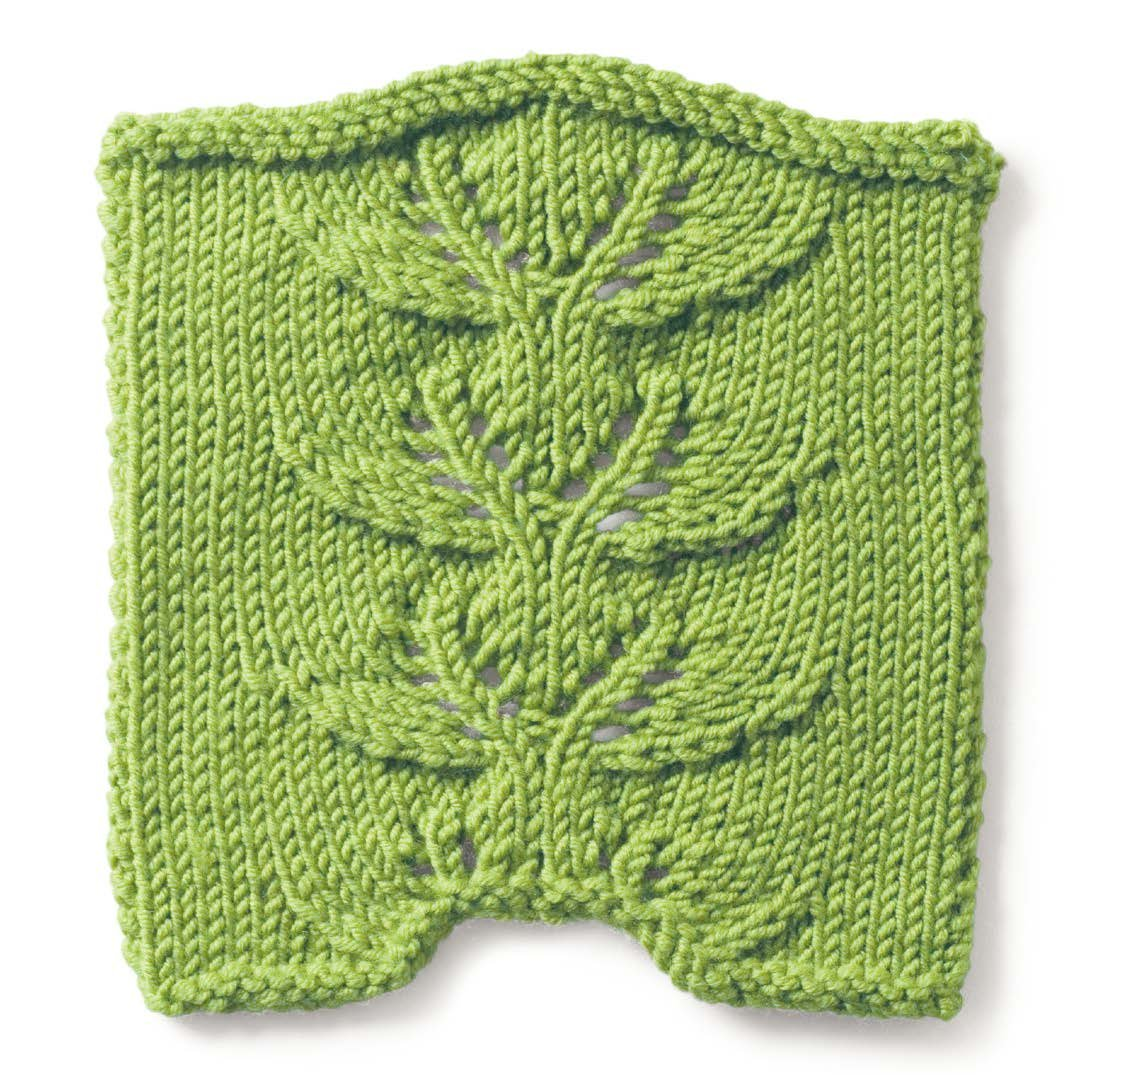 Flowers leaves 70 stitch patterns youll like to knit the flowers leaves 70 stitch patterns youll like to knit the editors of go crafty 9781938867590 amazon books bankloansurffo Choice Image